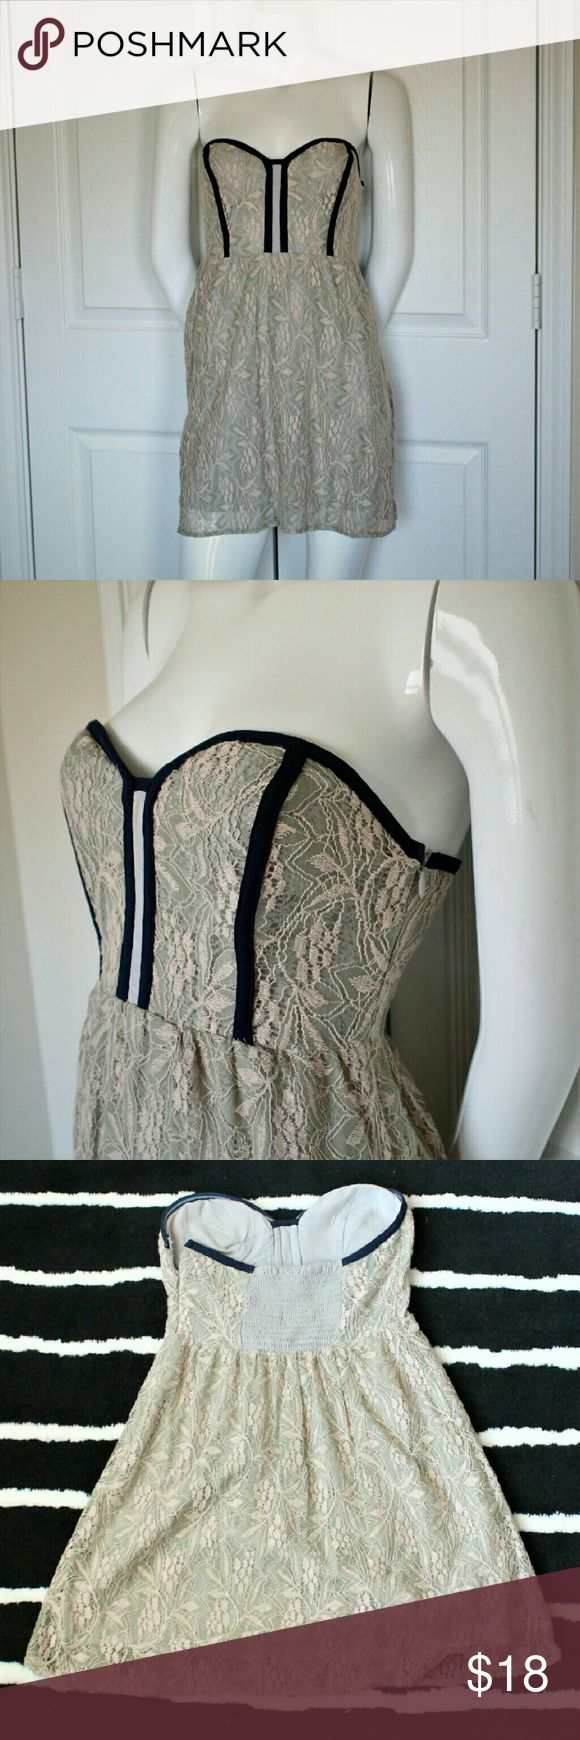 """Black Friday Sale! Pins&Needles Strapless Dress Flirty strapless Urban Outfitters dress in like new condition. The dress features built in bra cups, side zip and stretch back. The lining is a dove gray and has a cream and sea foam green lace overlay with navy piping. Measures 12"""" across at the waist, and 25"""" in length.   Please let me know if you have questions or need more pictures! Urban Outfitters Dresses Strapless"""